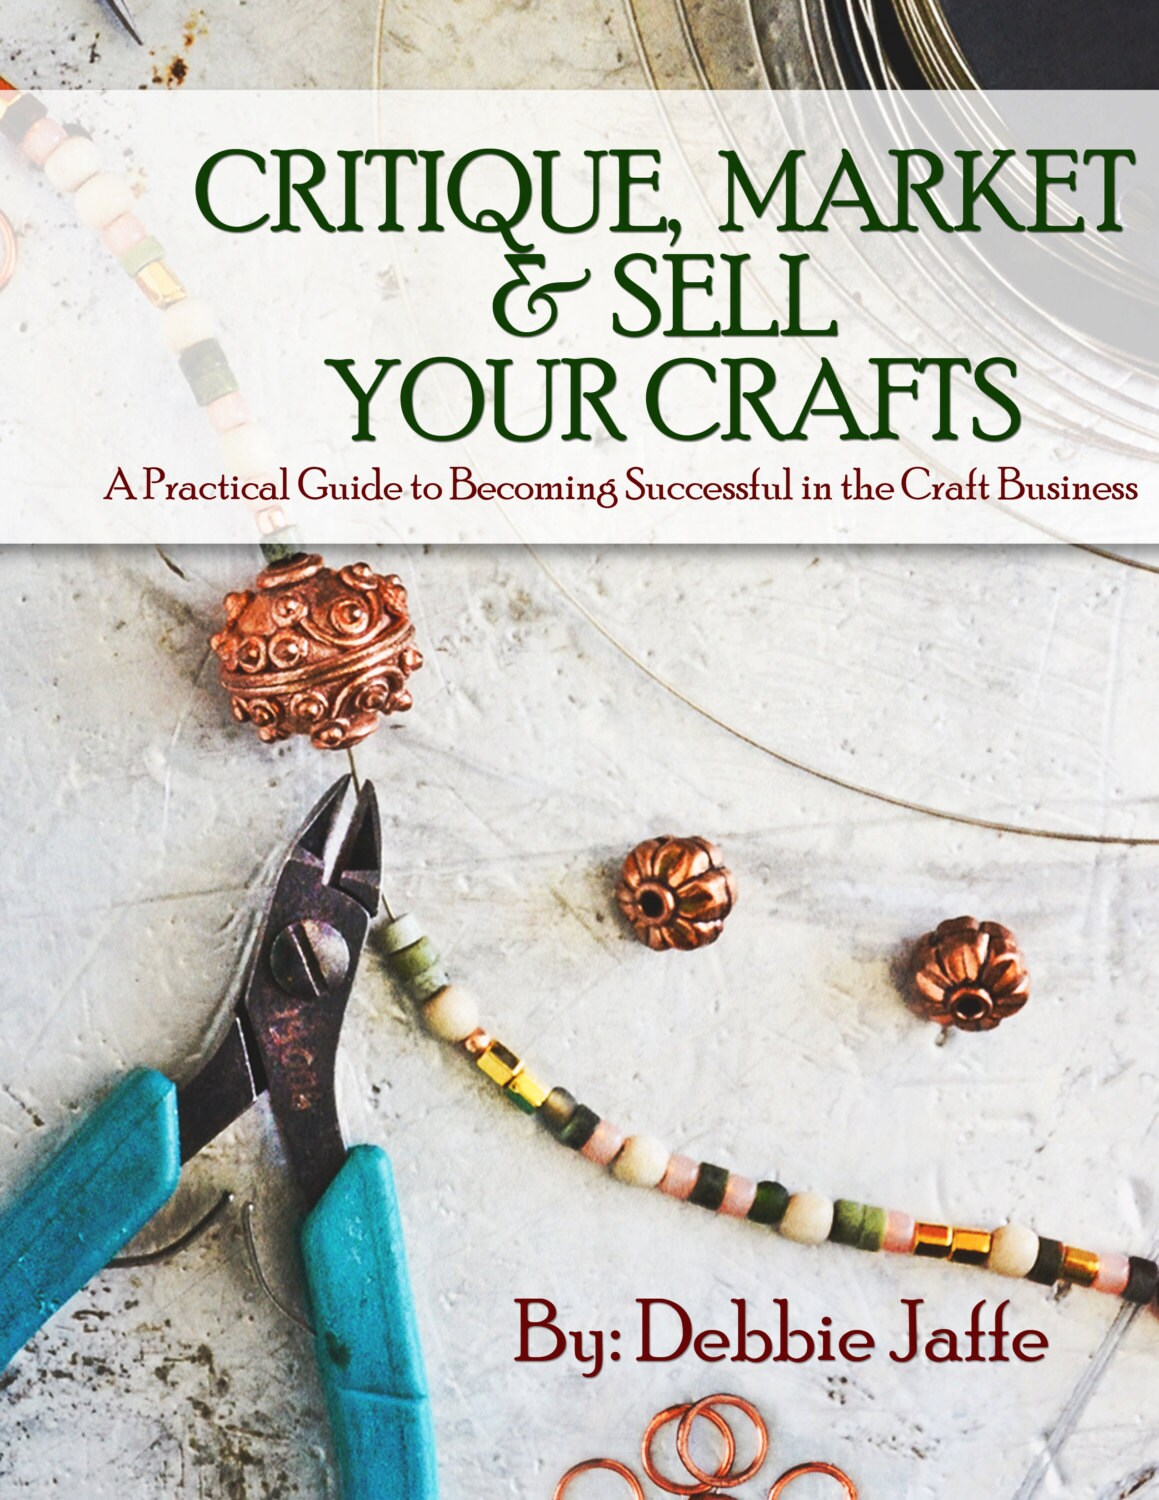 How to sell your crafts online a step by step guide to for Selling crafts online etsy